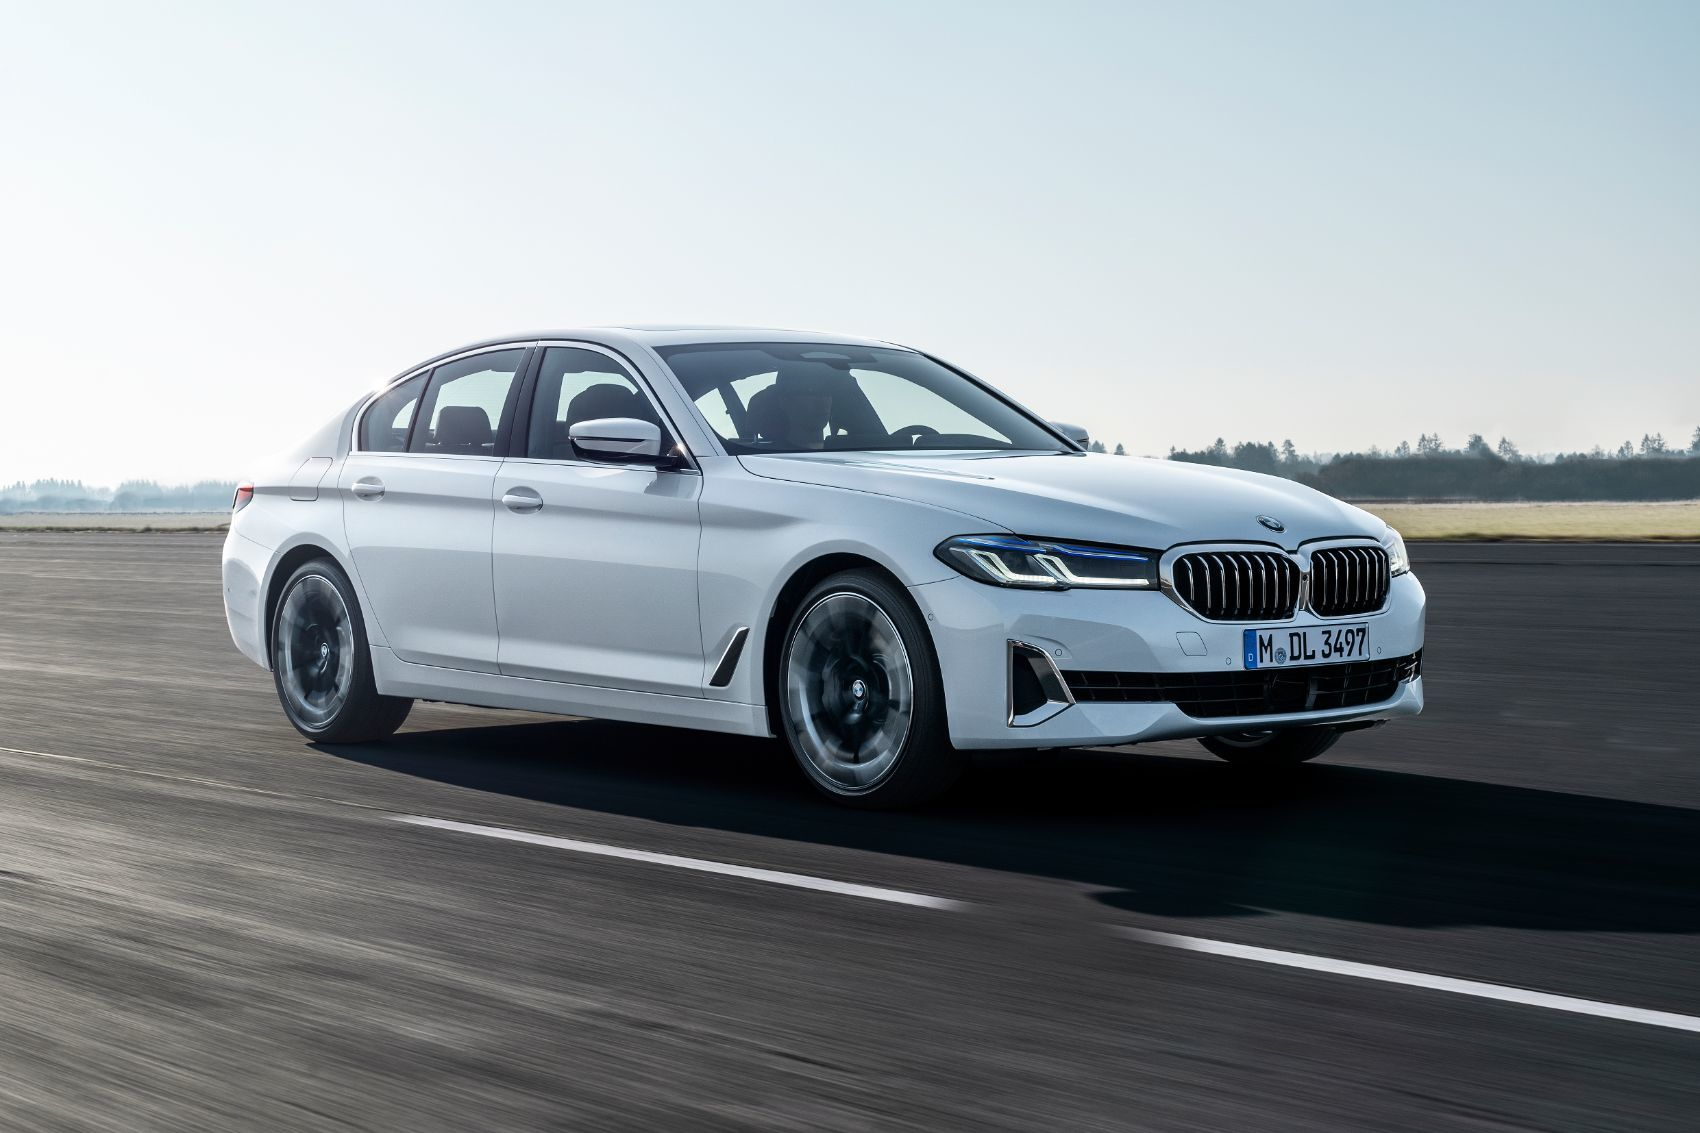 2021 BMW 5 Series: Free Ultimate Reference Guide to This Swoon-Worthy Machine